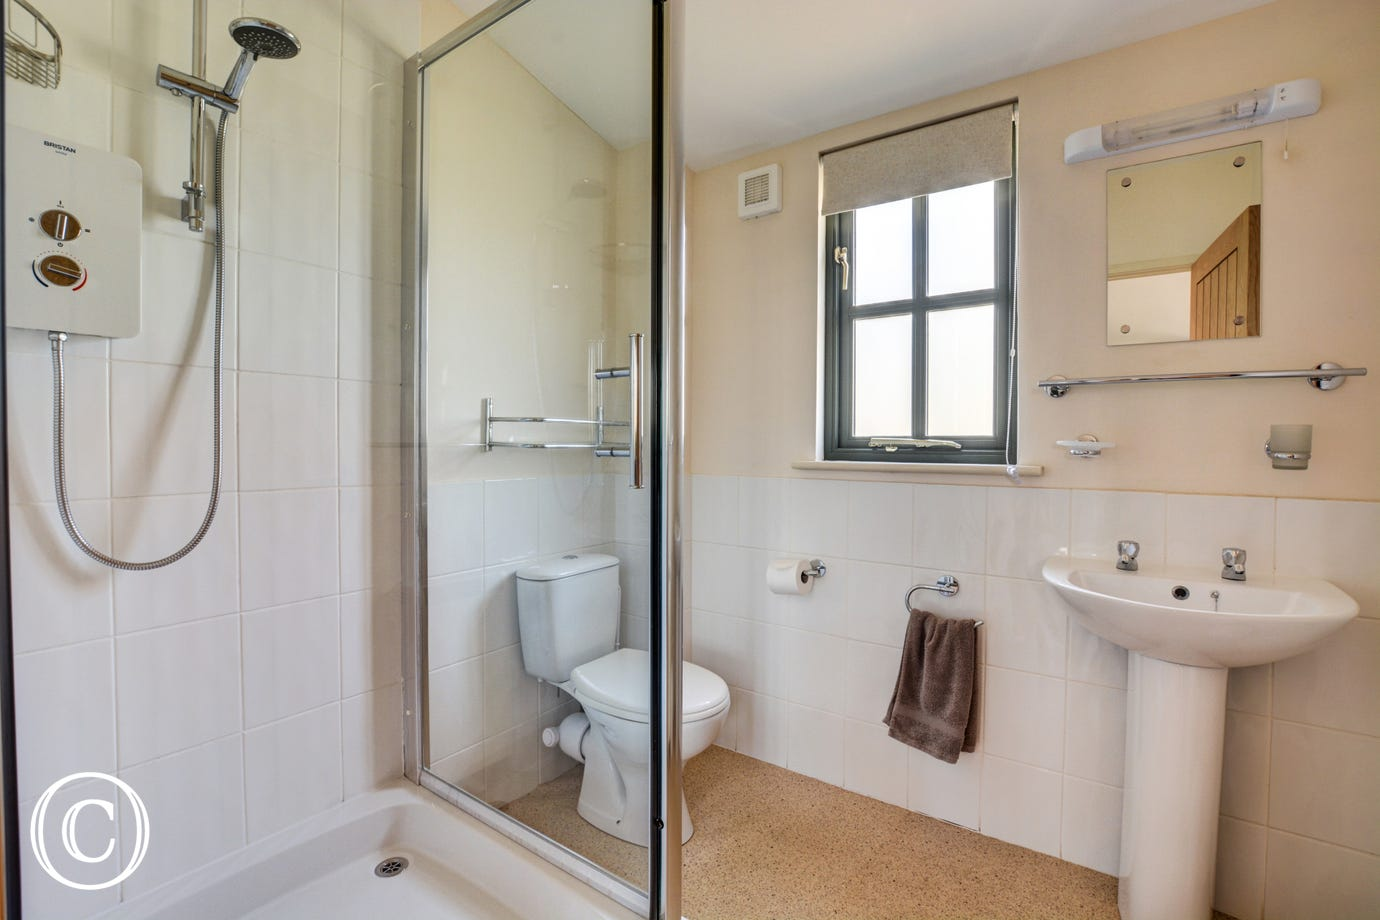 Modern shower room with separate cubicle